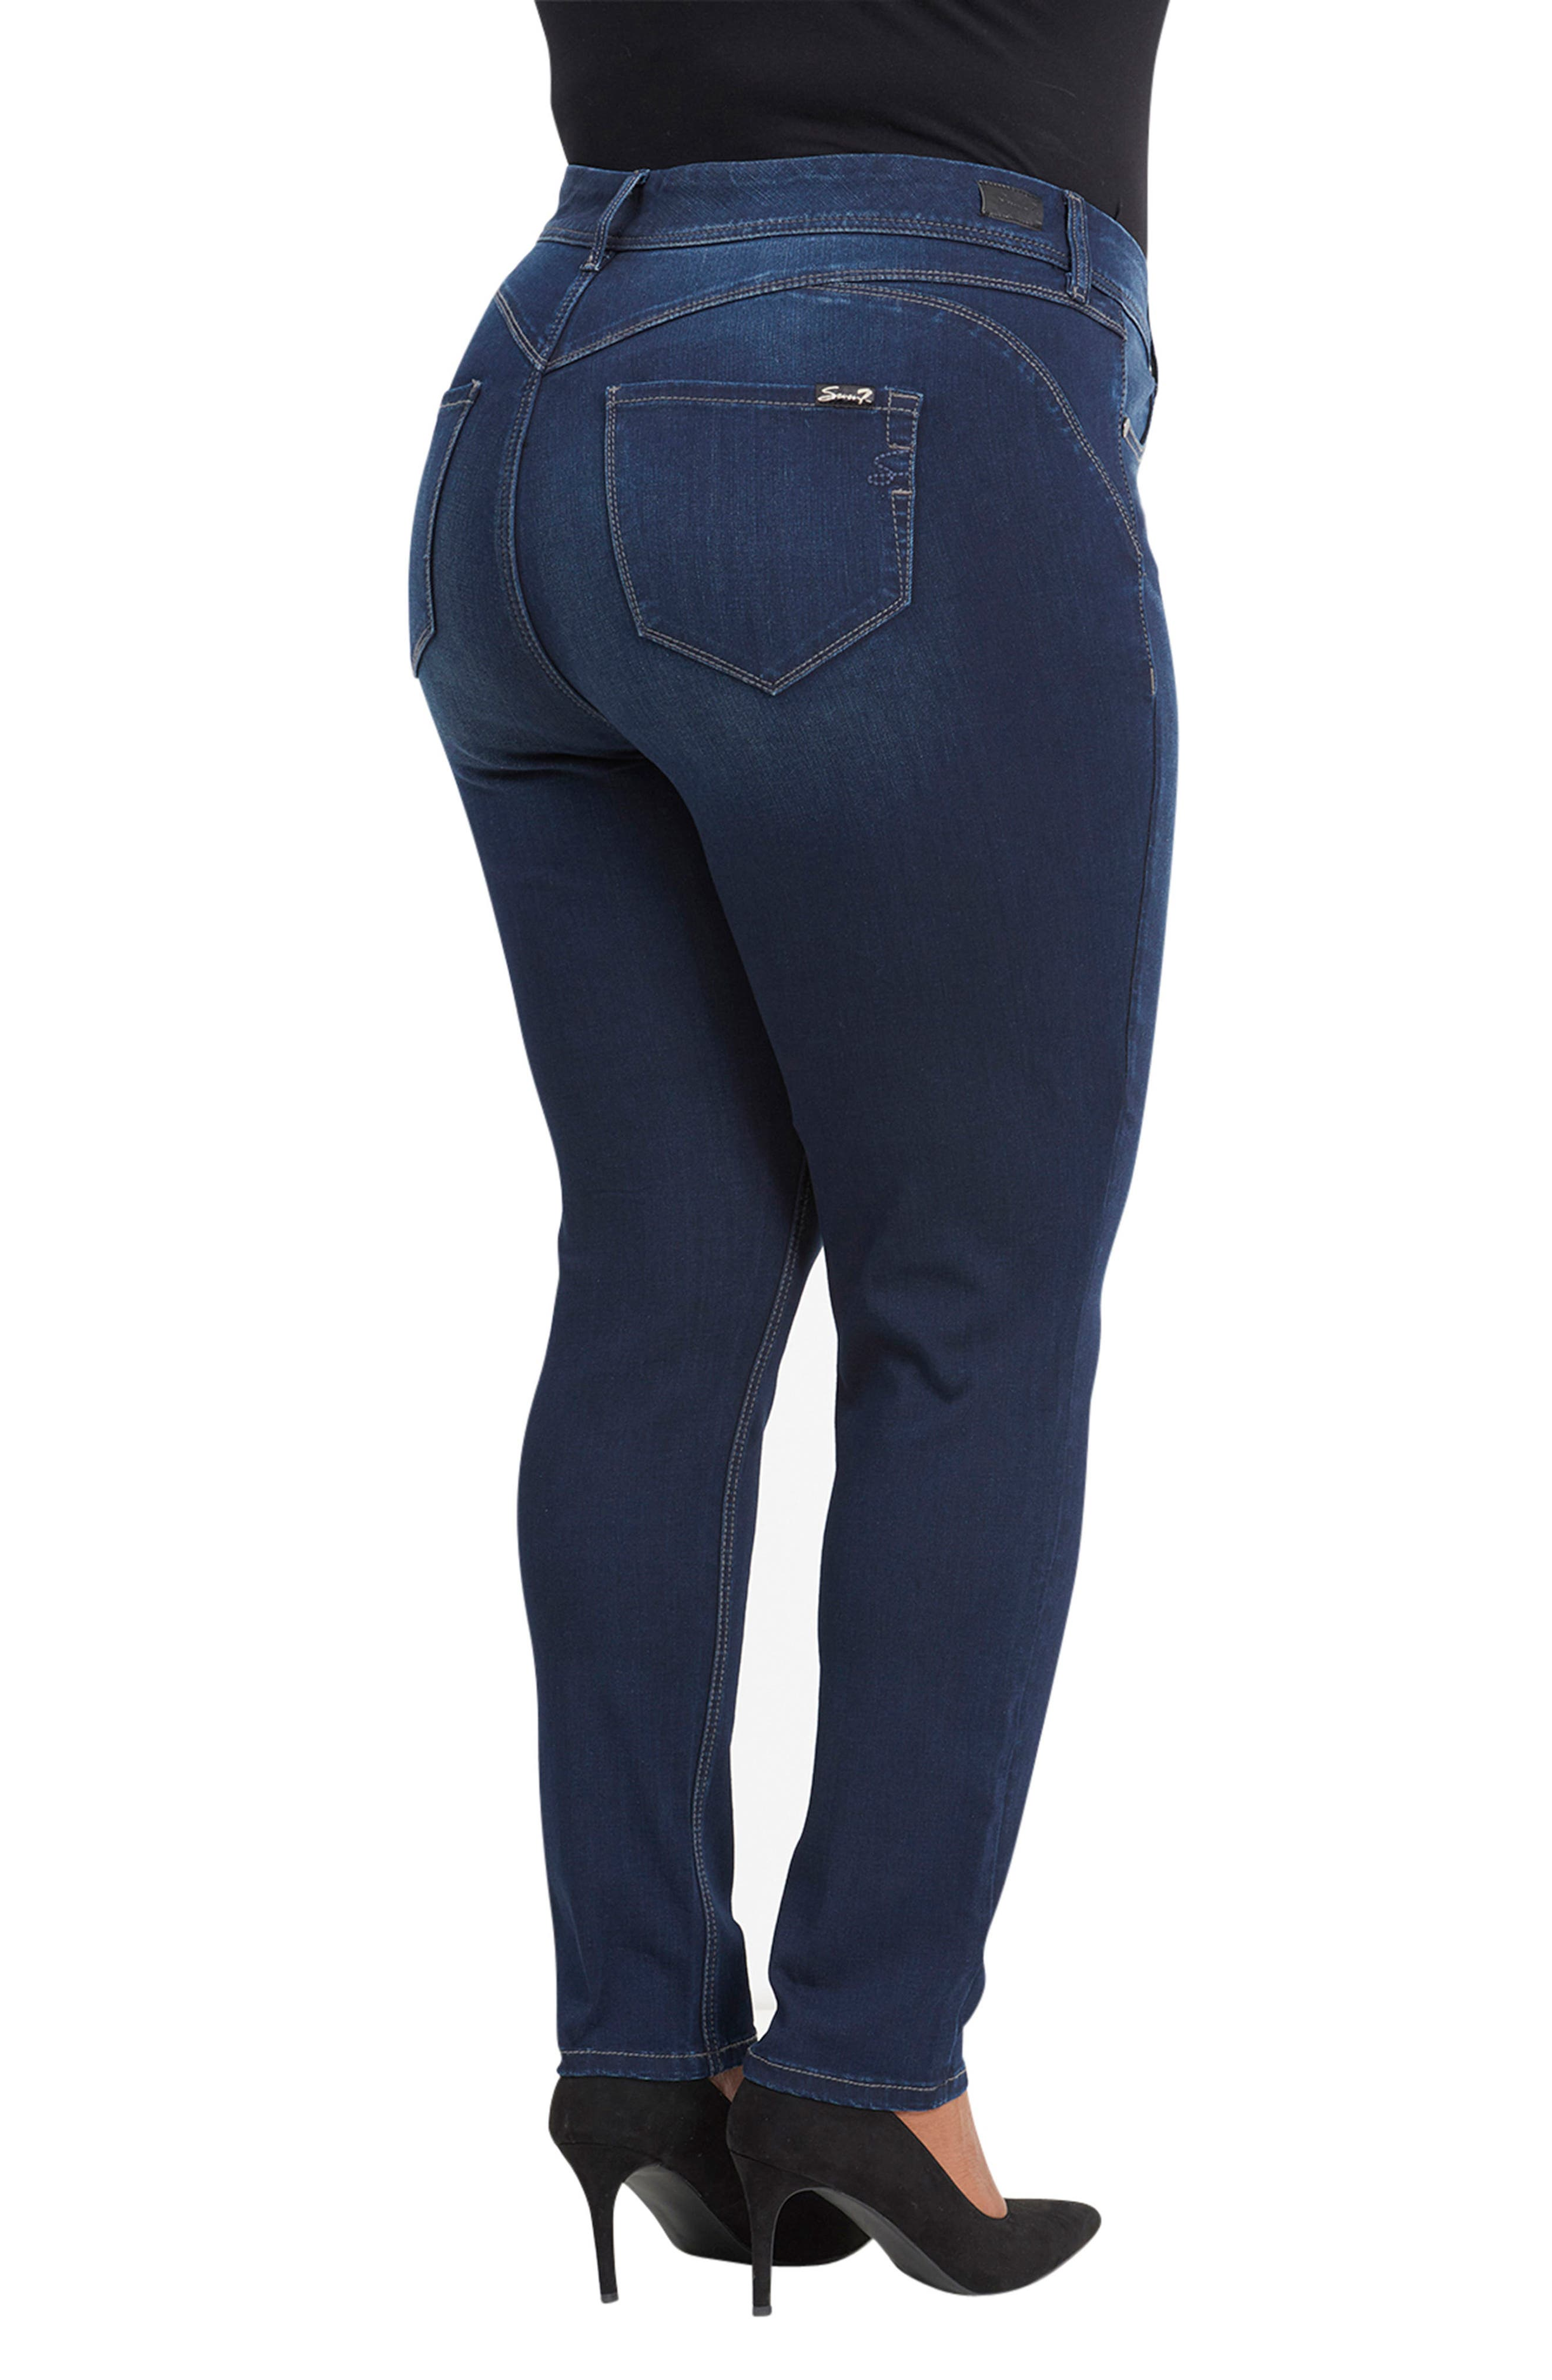 Bootyshaper Skinny Jeans,                             Alternate thumbnail 6, color,                             BLUE